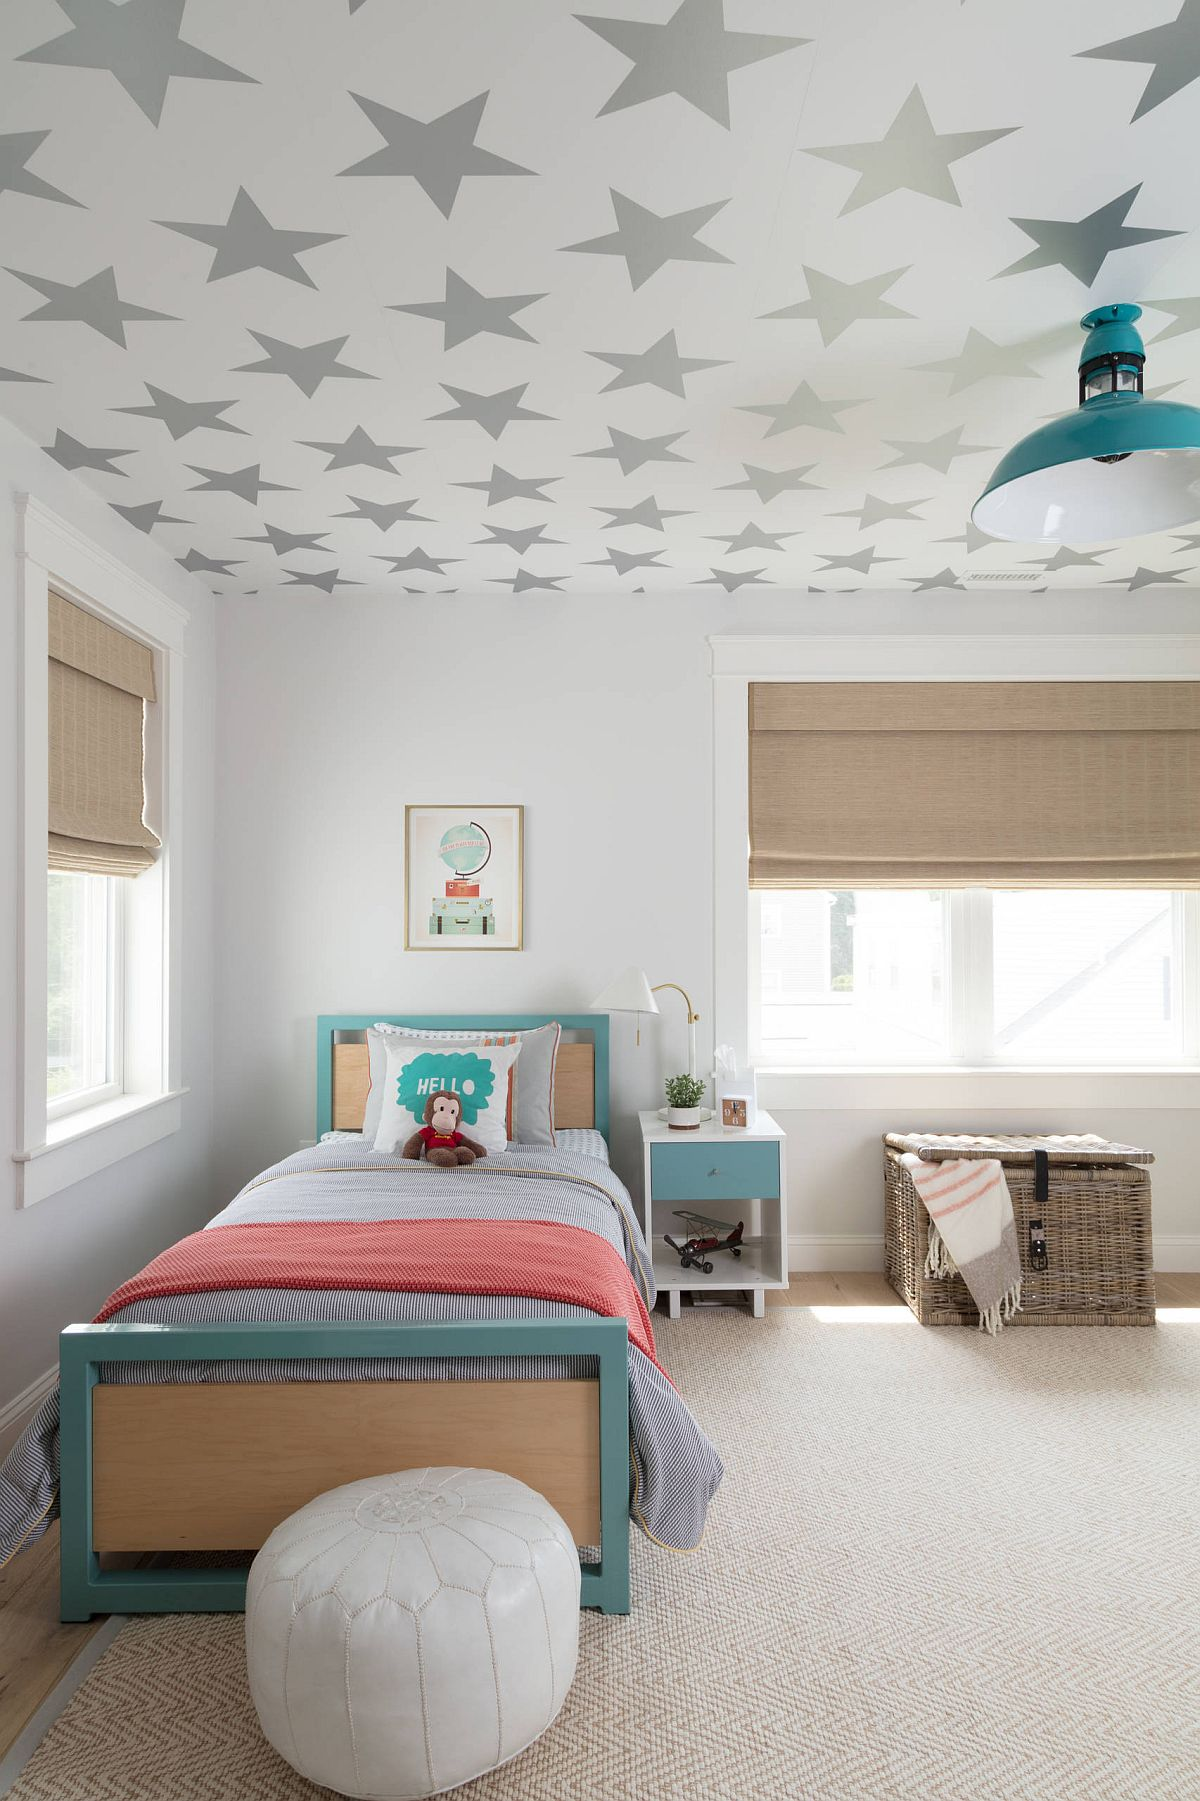 Beautiful wallpaper with starry pattern does not disturb the color scheme in this boys' bedroom